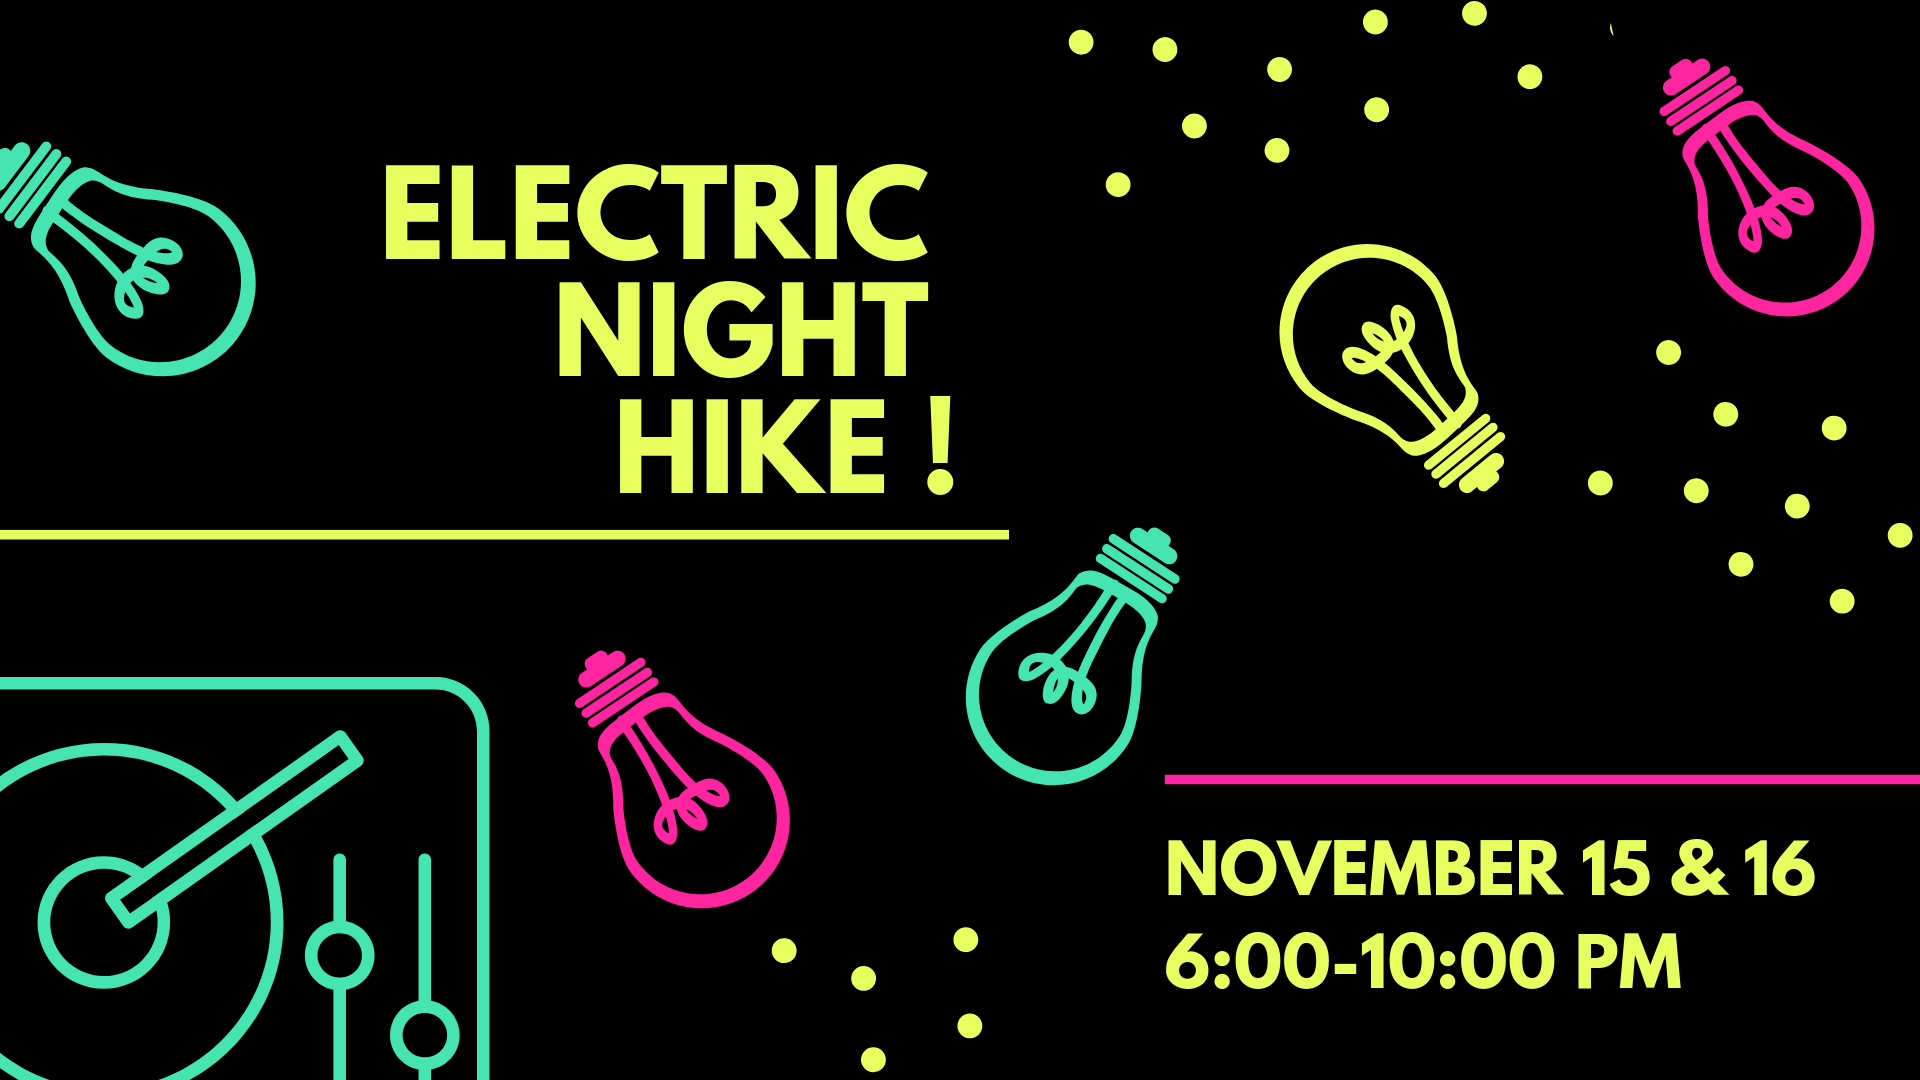 wildwood's electric night hike